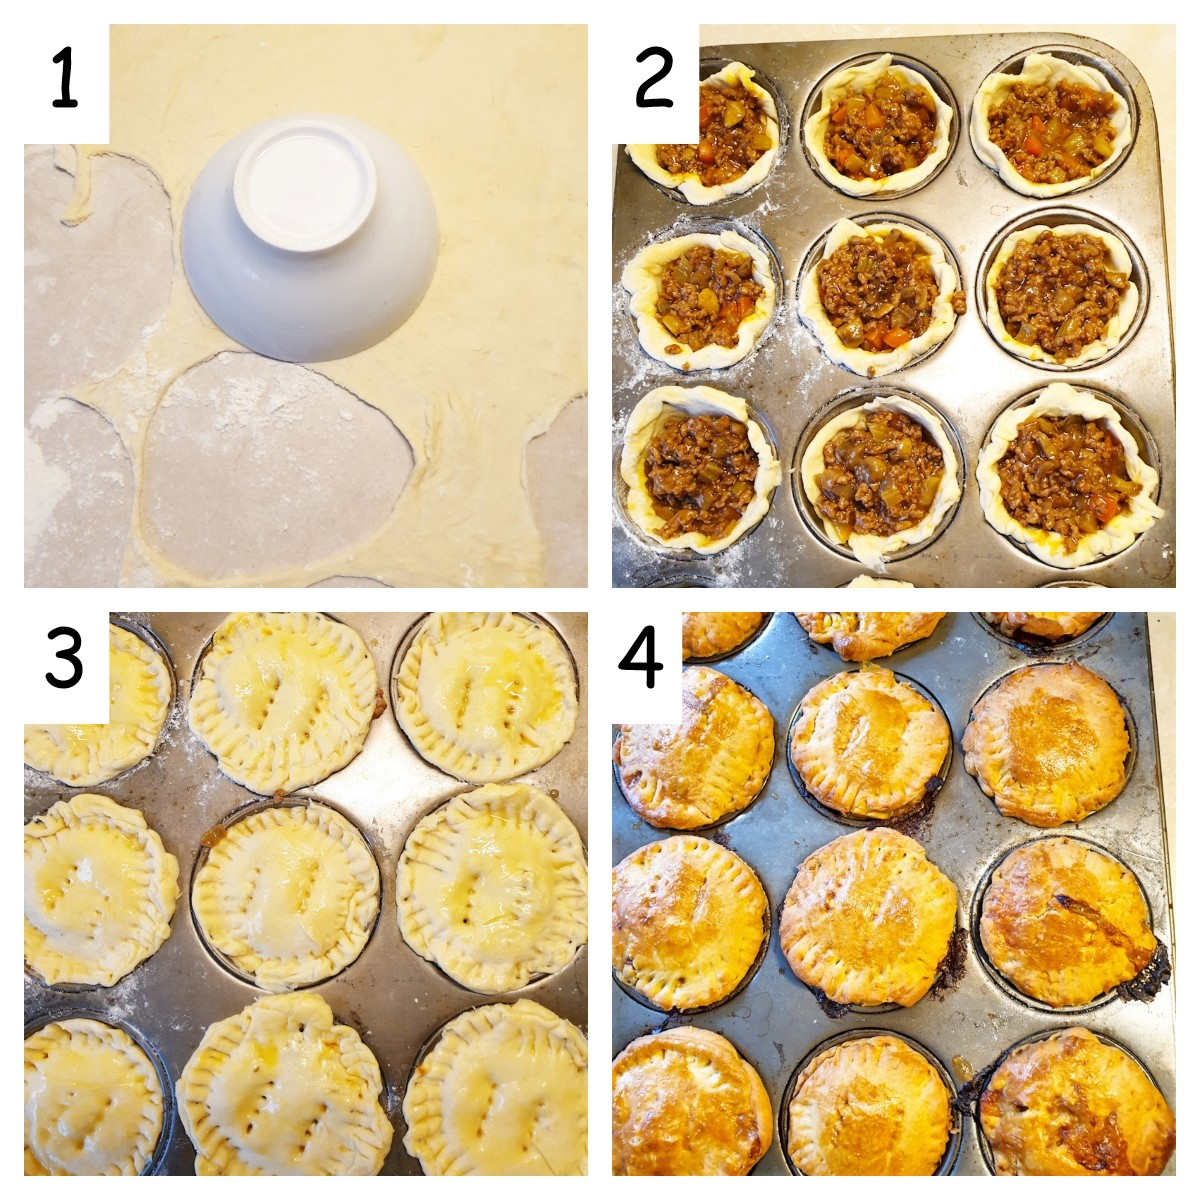 Collage of 4 images showing steps for rolling the pastry and filling the muffin tins.